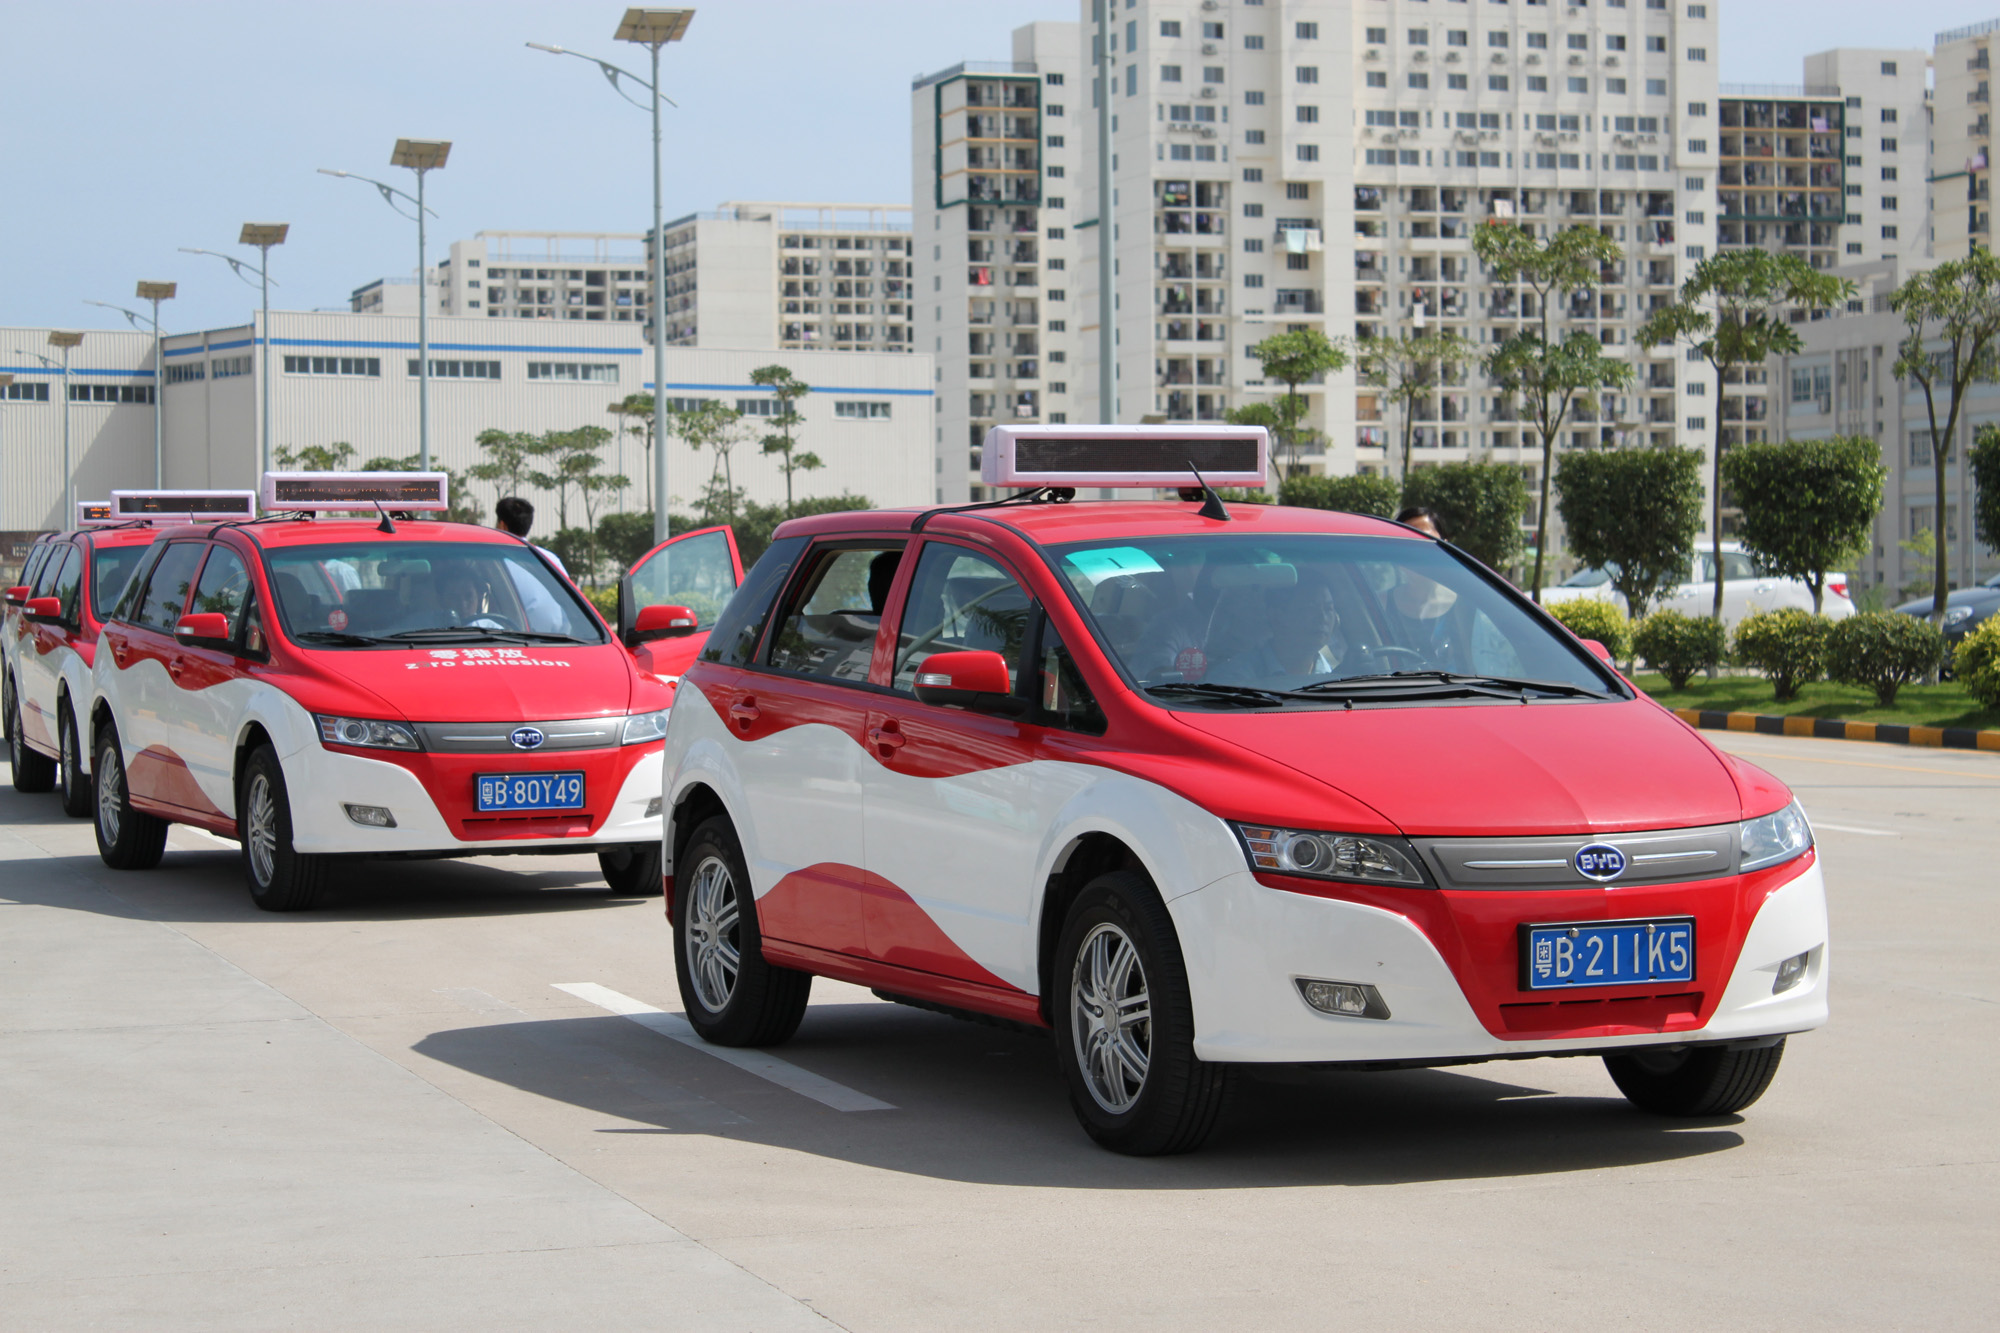 China Wants All Electric Cars Will It Work Reasons And Reactions